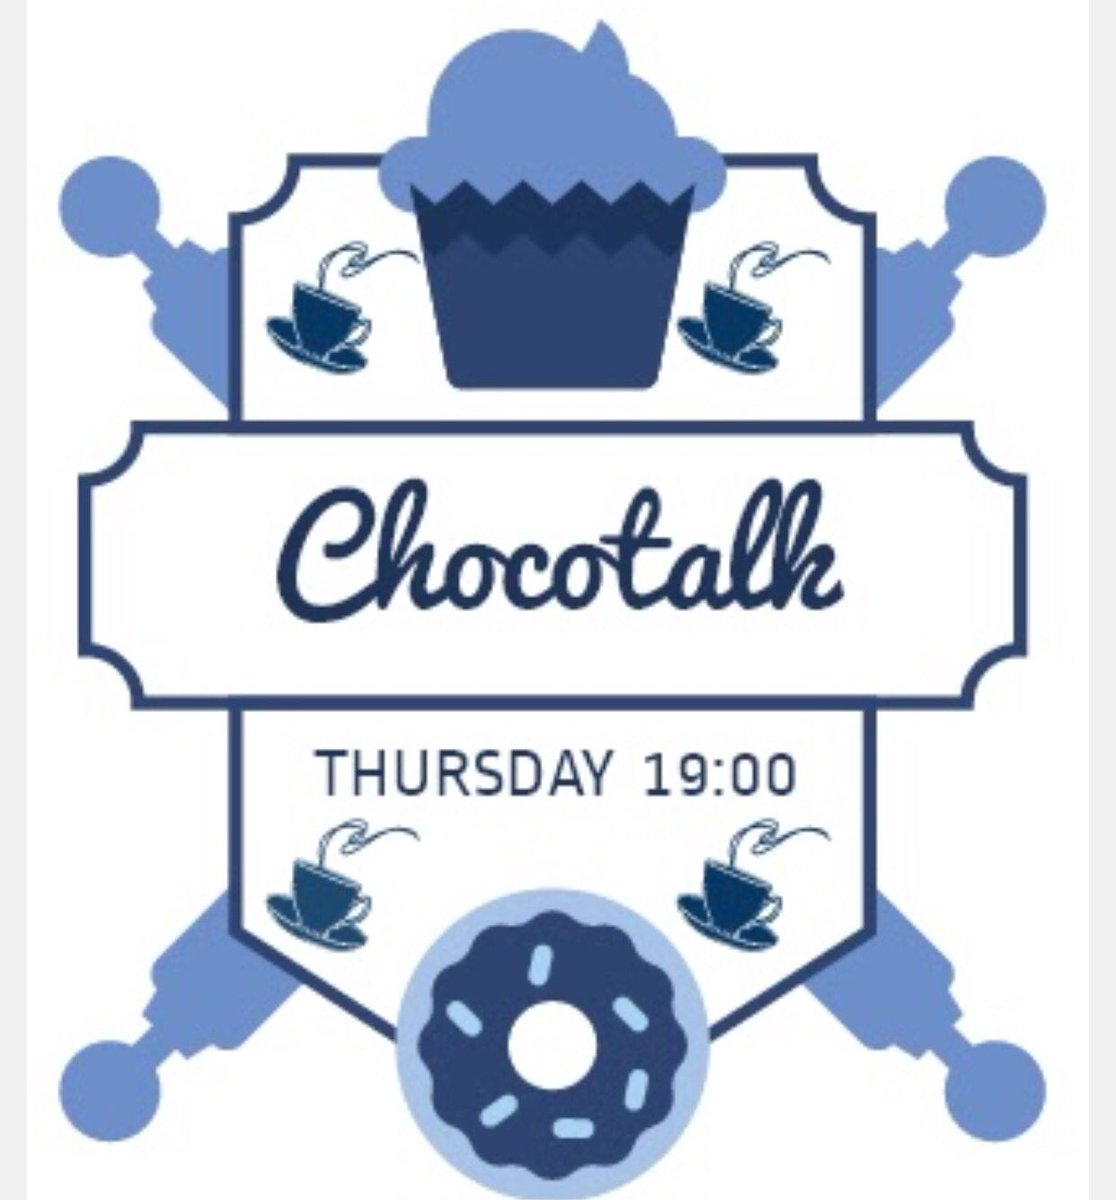 #ictclil_urjc In 10 minute, you can connect with the Chocotalk with this link: https://t.co/kTmMxJC4jA https://t.co/O4WydQuEKV